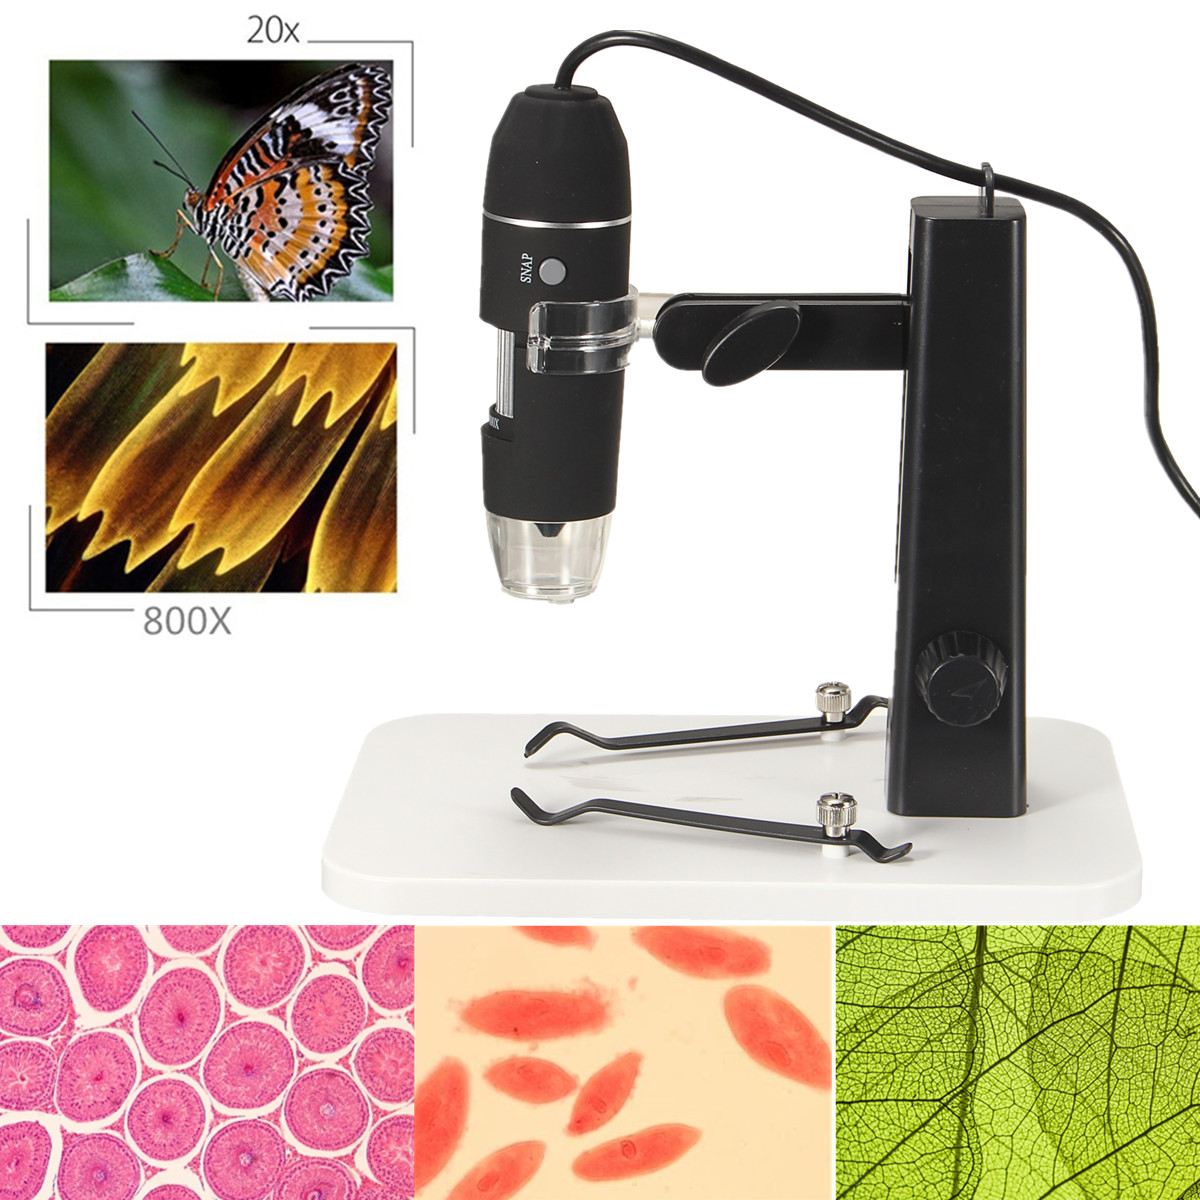 800X HD Digital USB Microscope 2.0MP CMOS Microscope Camera with 8 LED Adjustable Adjustable Stand